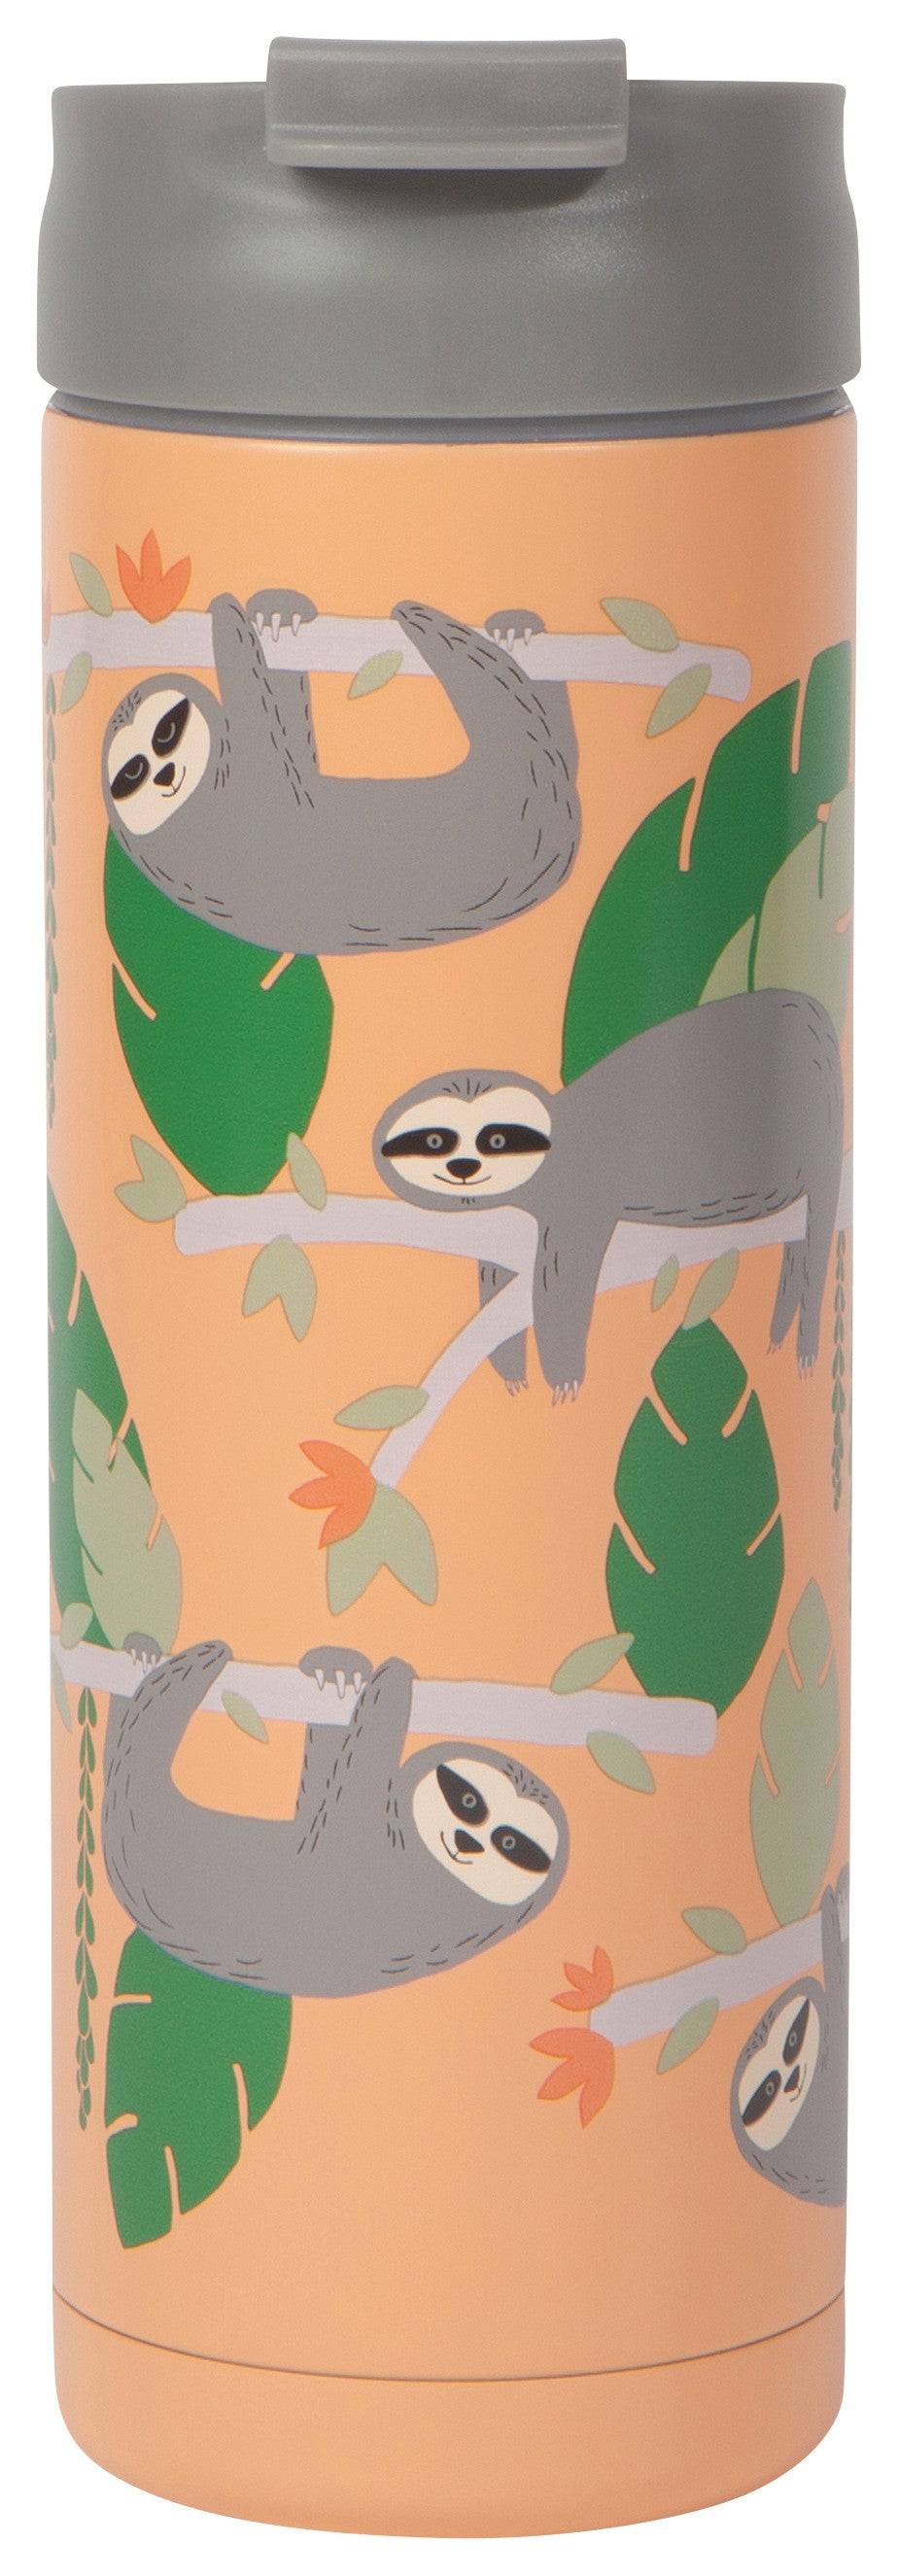 Roam Travel Mug - Sybil Sloth